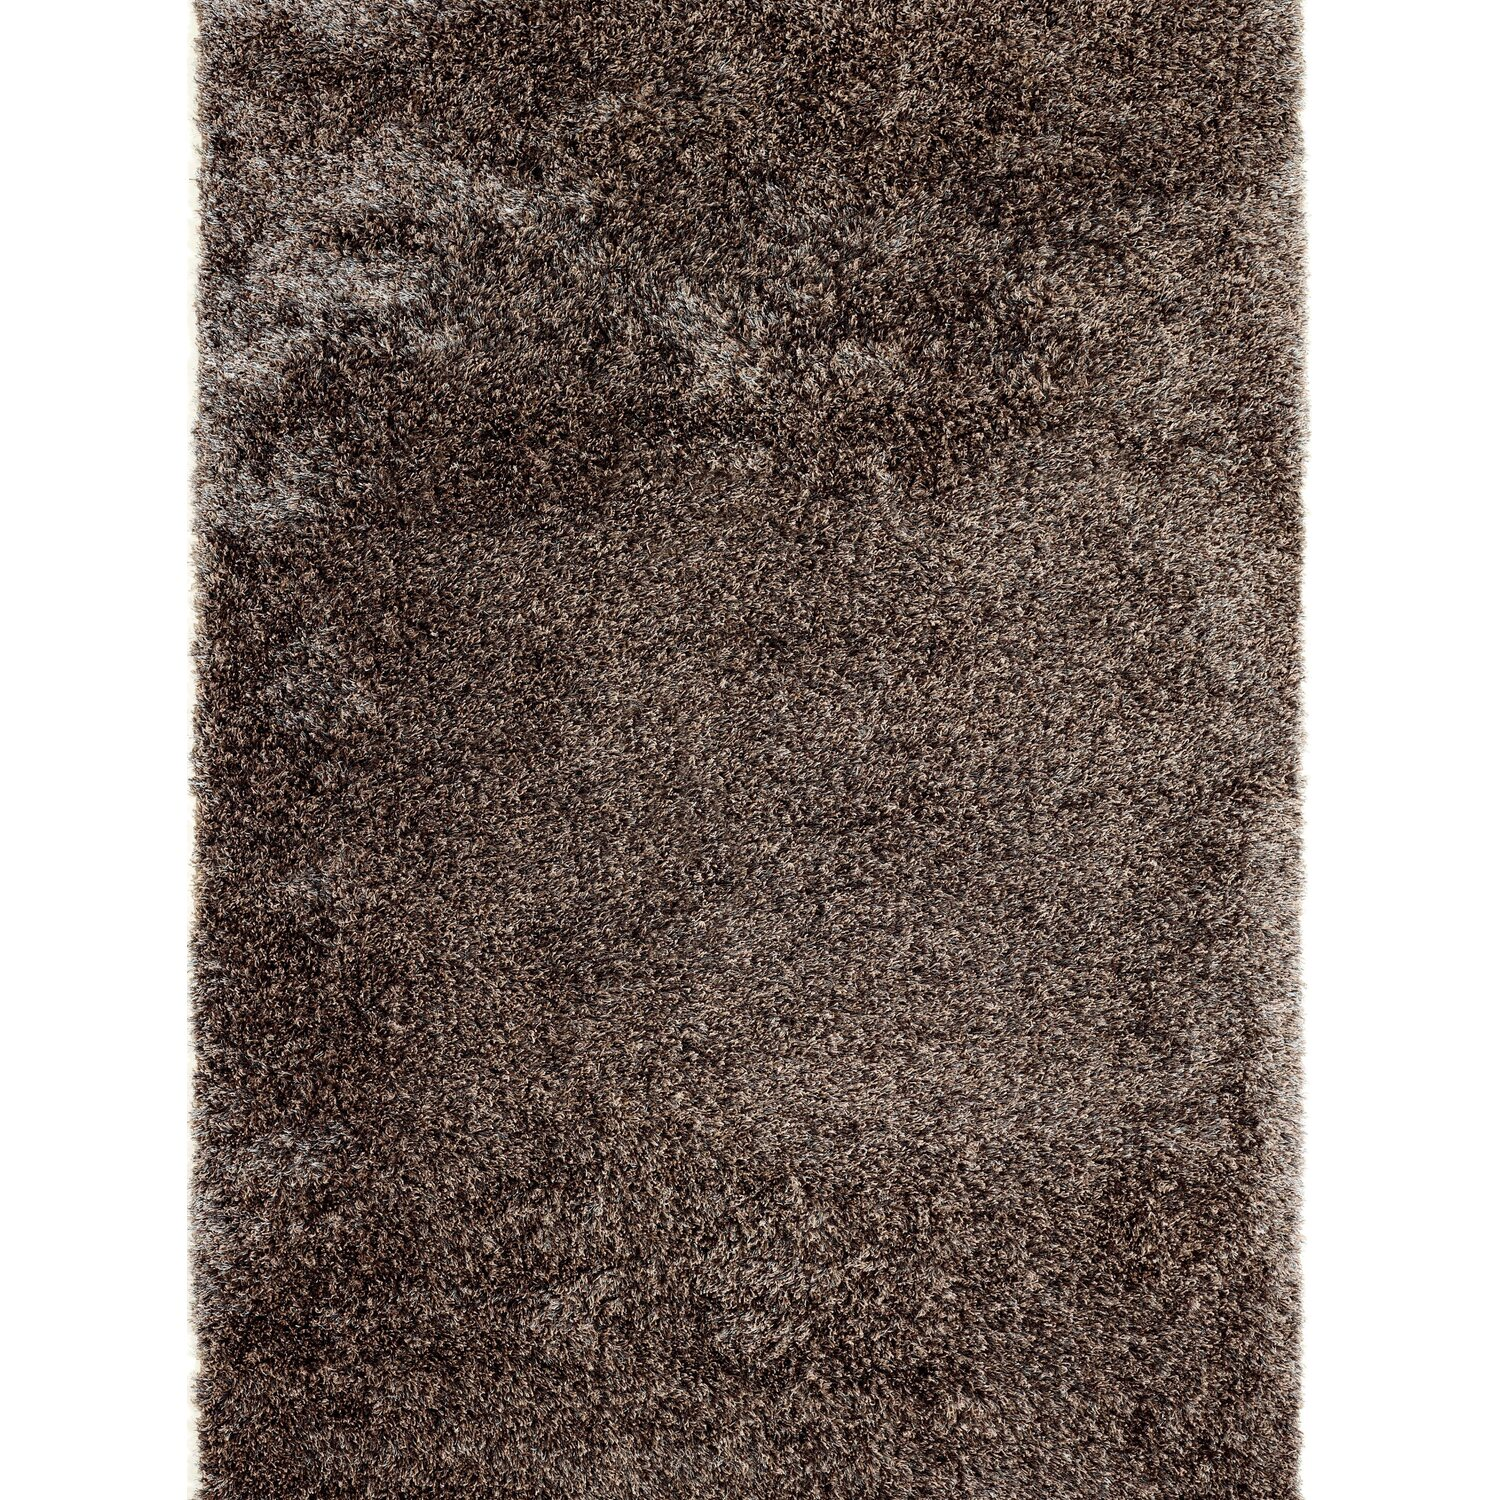 bb home passion Barbara Becker Teppich Emotion 140 cm x 200 cm Taupe